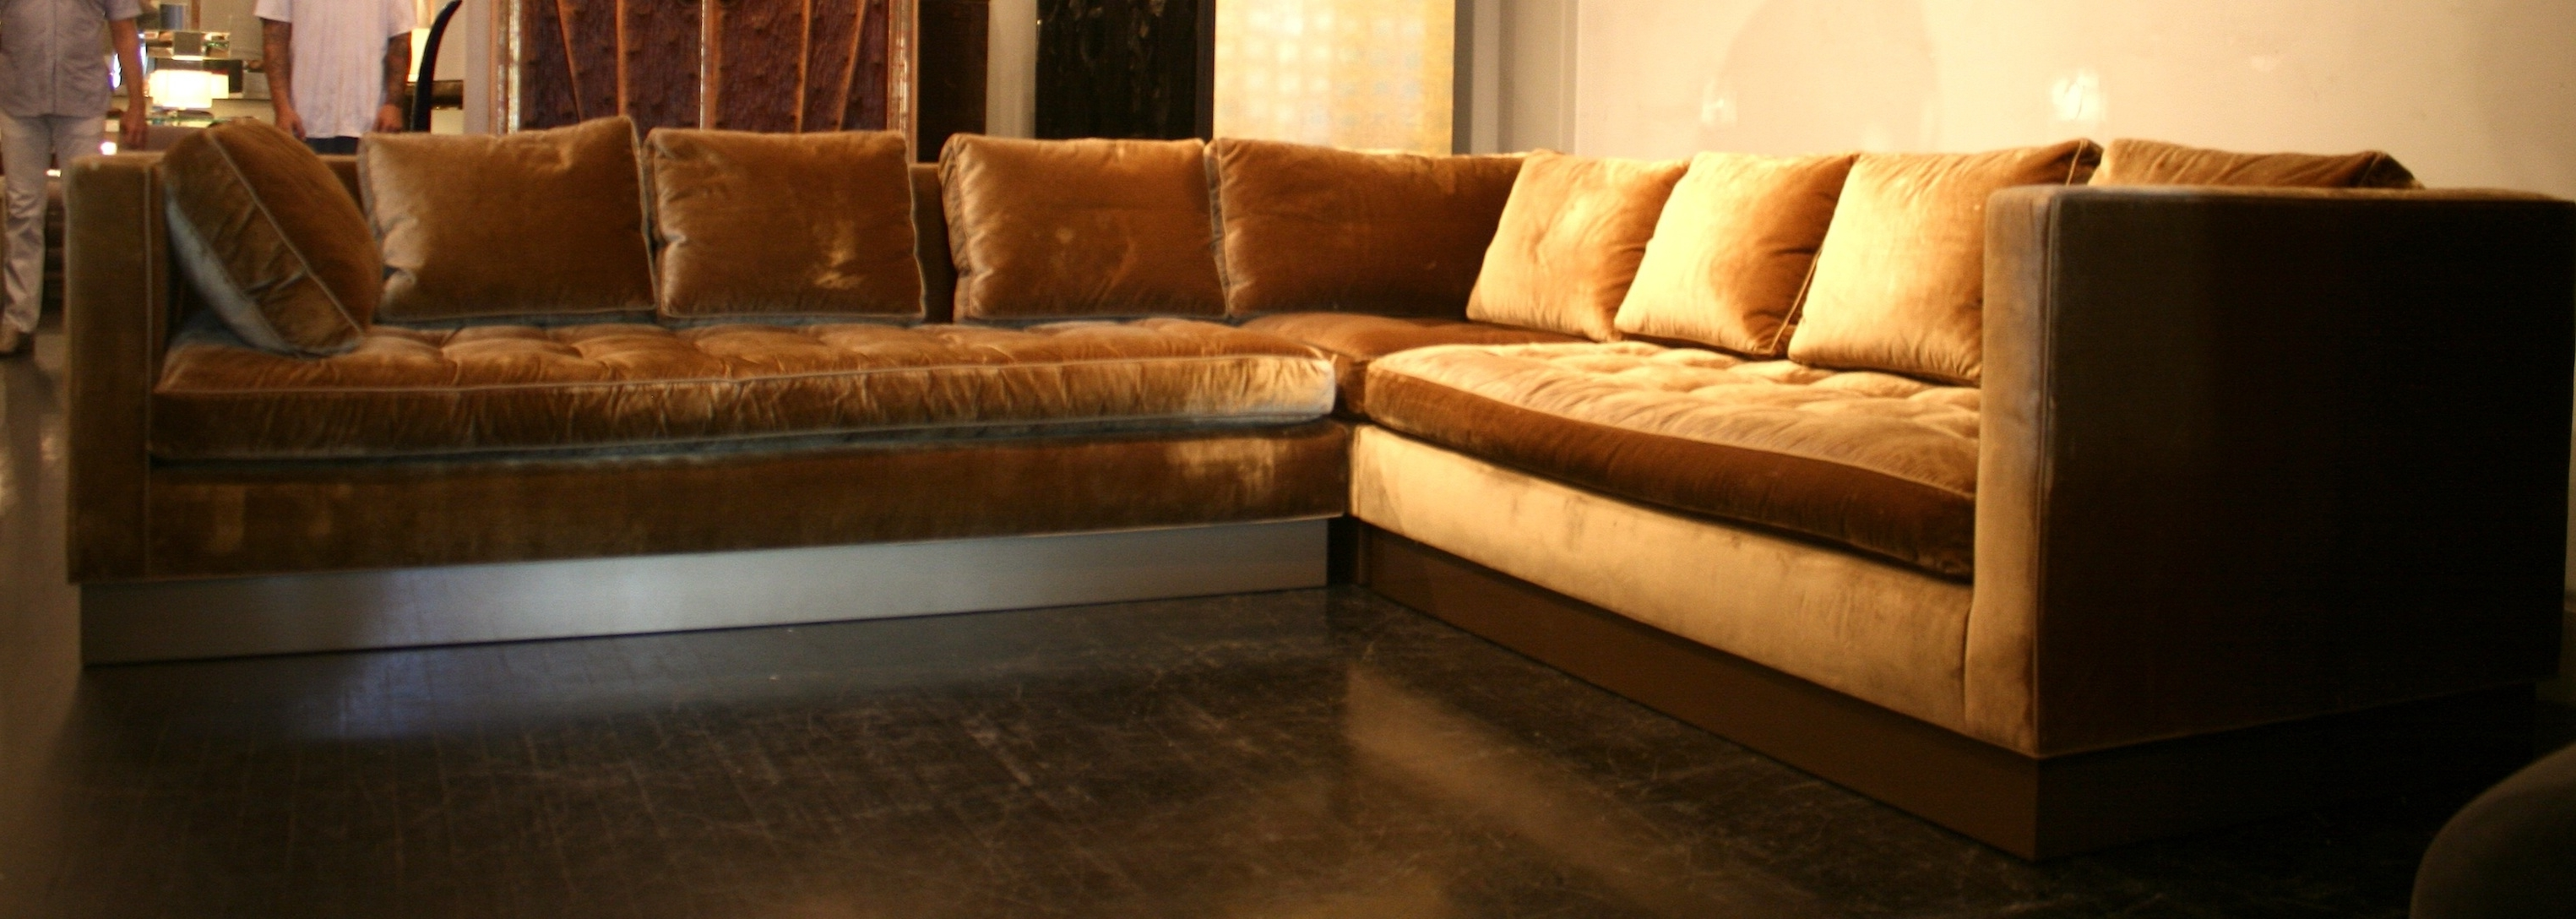 gold sectional sofa mueble cama abatible vertical con best 20 of sofas and newest intended for view 8